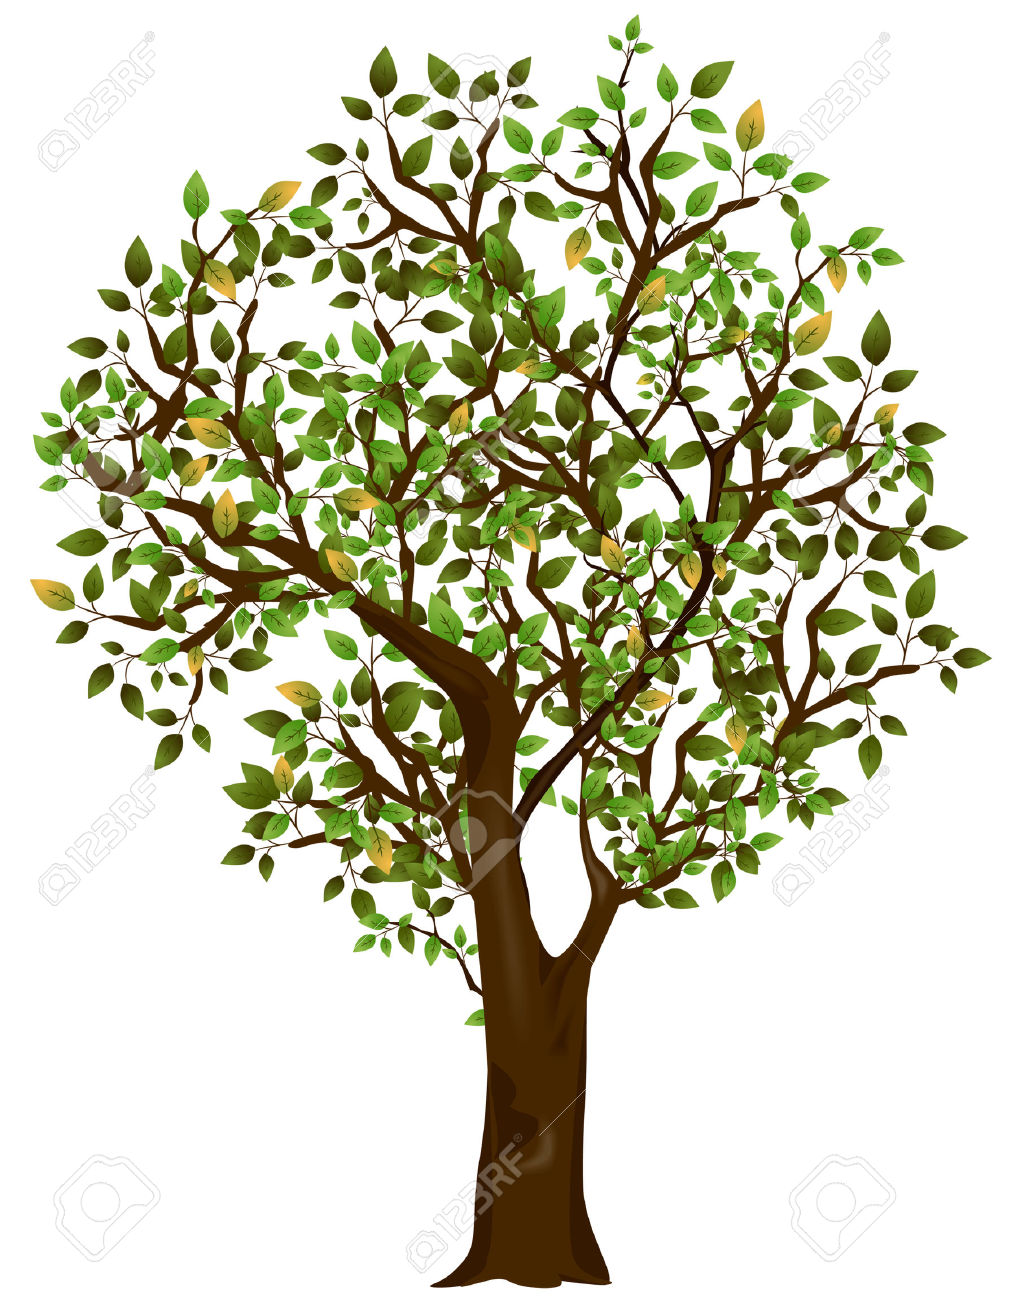 Tree Illustration With Clipping Path Royalty Free Cliparts.